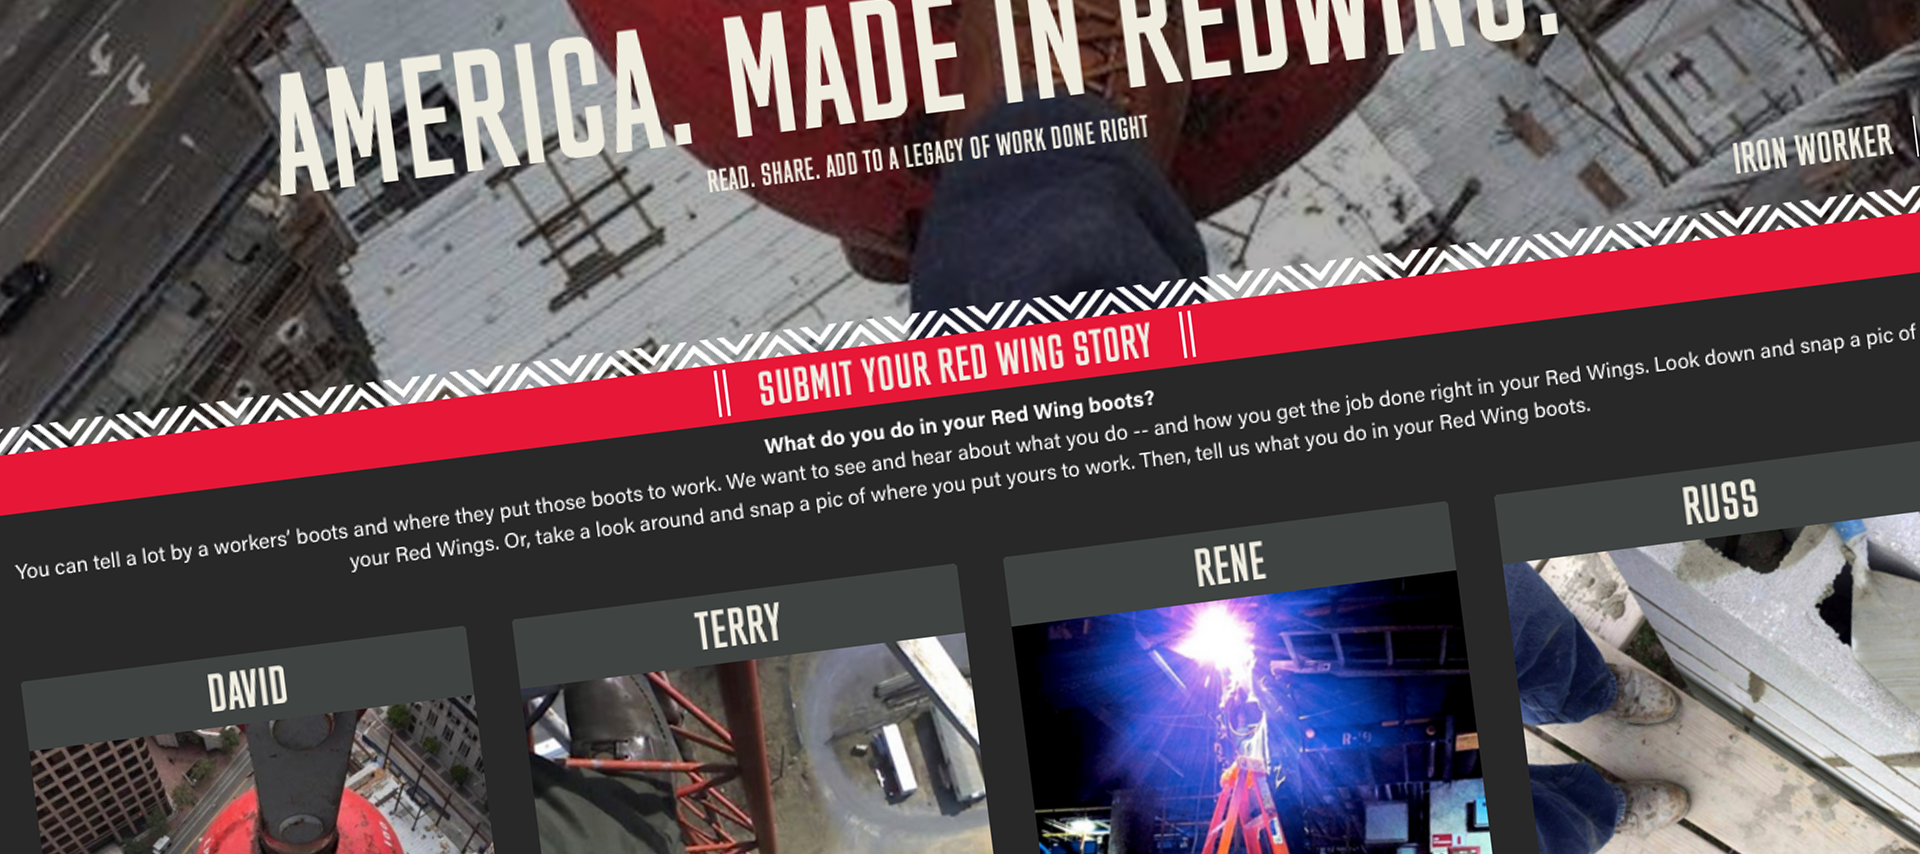 To leverage the user behavior occurring on social of users snapping pics of their work boots while on site, we created a   Red Wing Content Hub   to collect all of these Red Wing stories in one place and to encourage that users share their own. In addition to this UGC content, a   podcast series     was also created taking users deeper into the Red Wing experience.